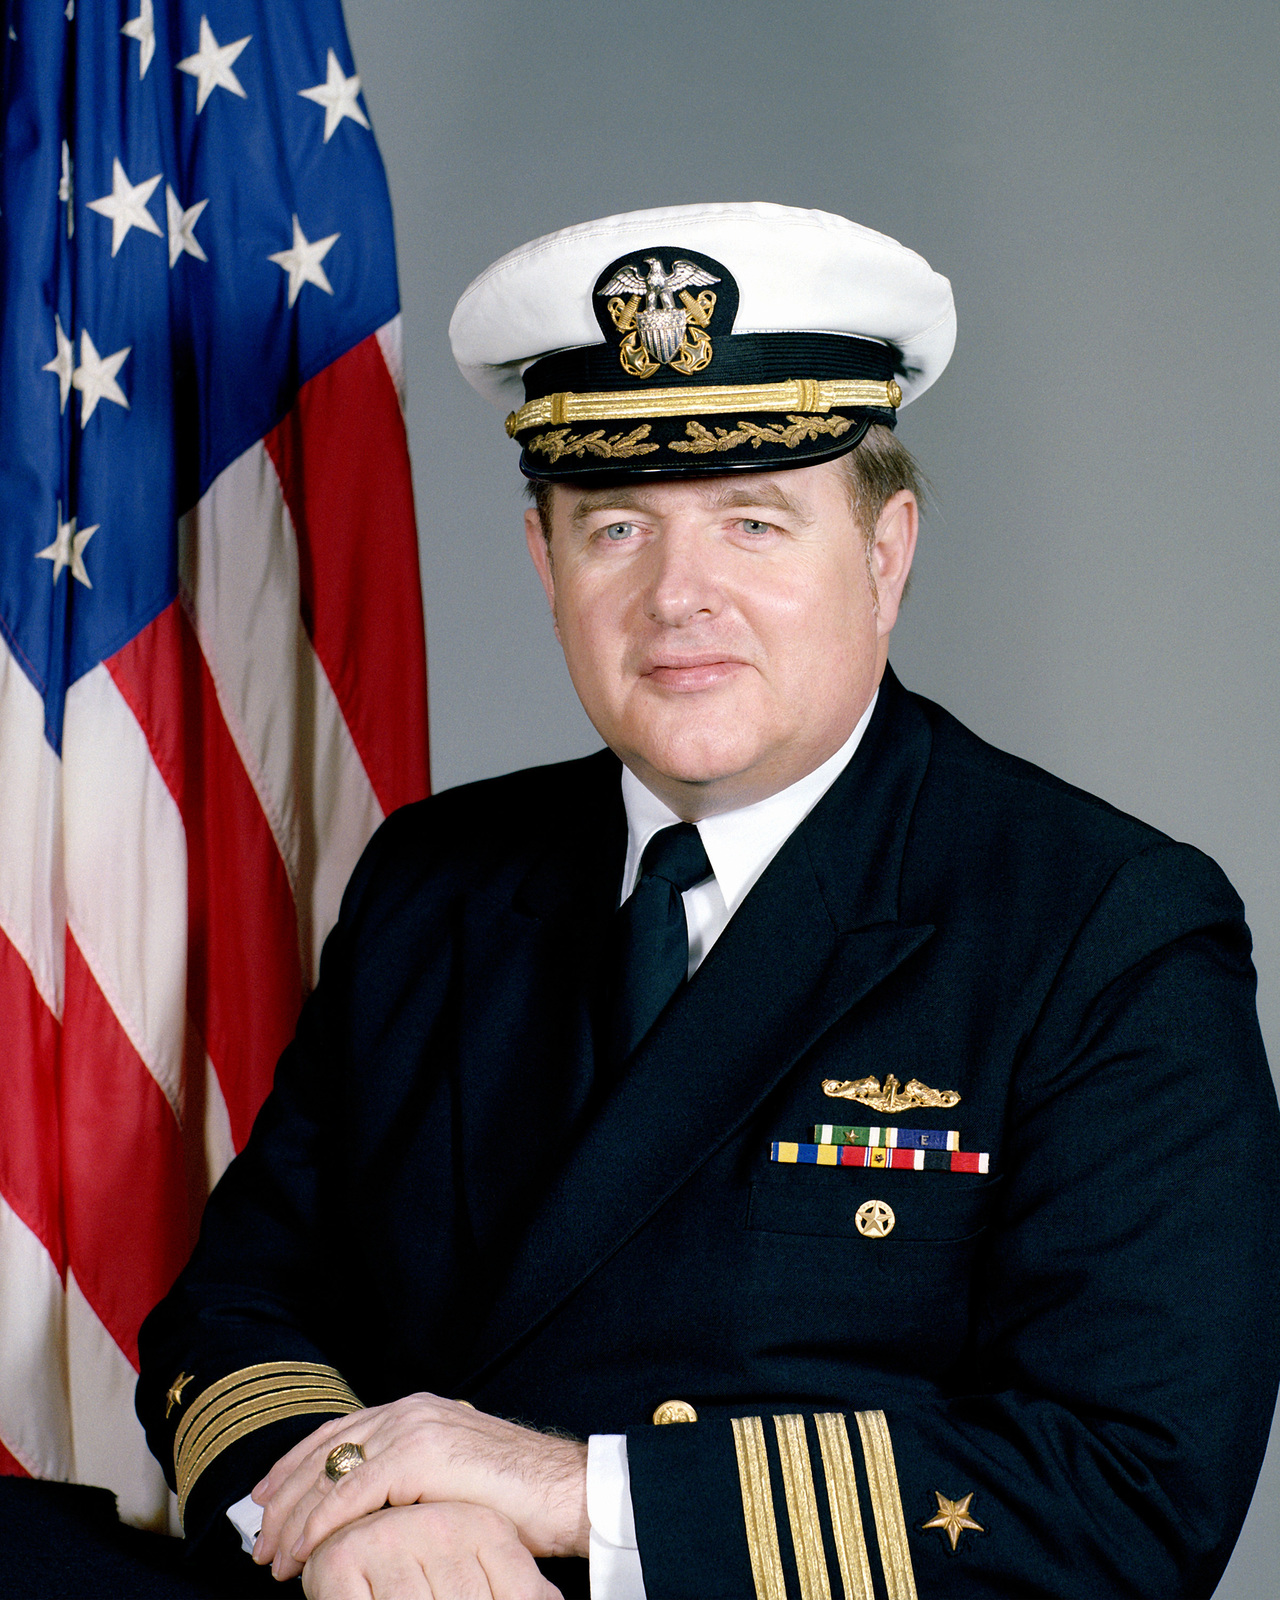 CAPT Noel T. Wood, USN (covered)